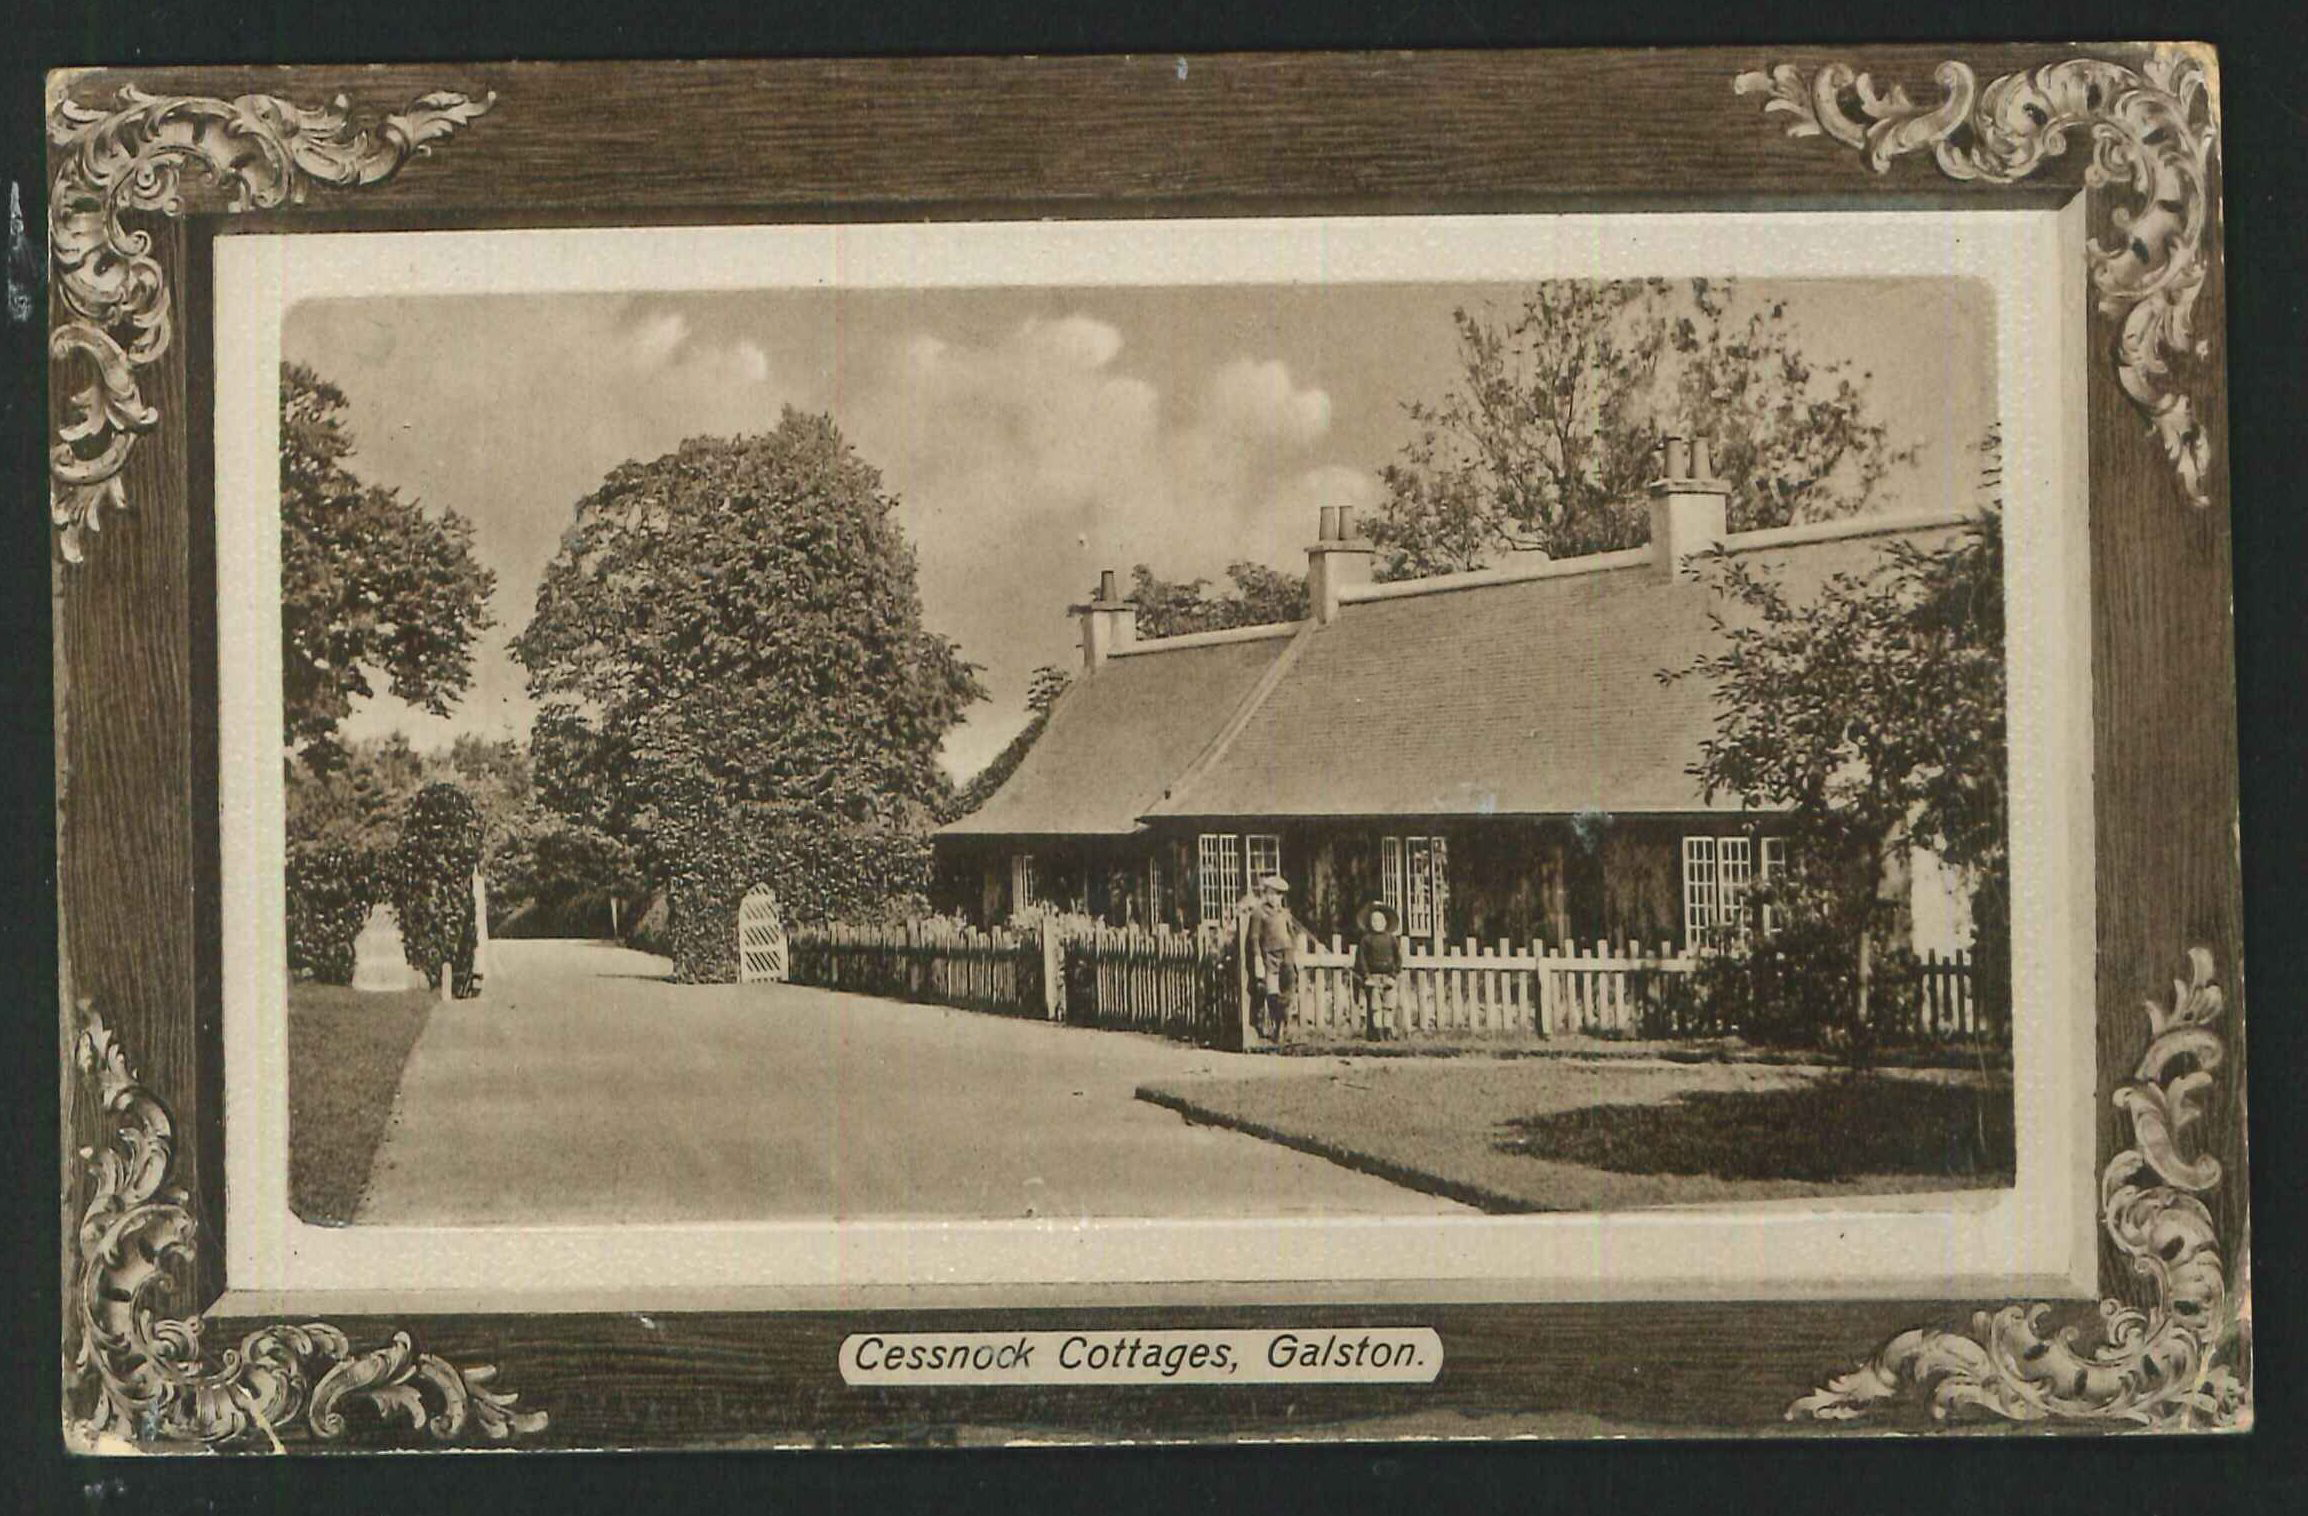 Postcard Cessnock Cottages Galston Ayrshire 1912